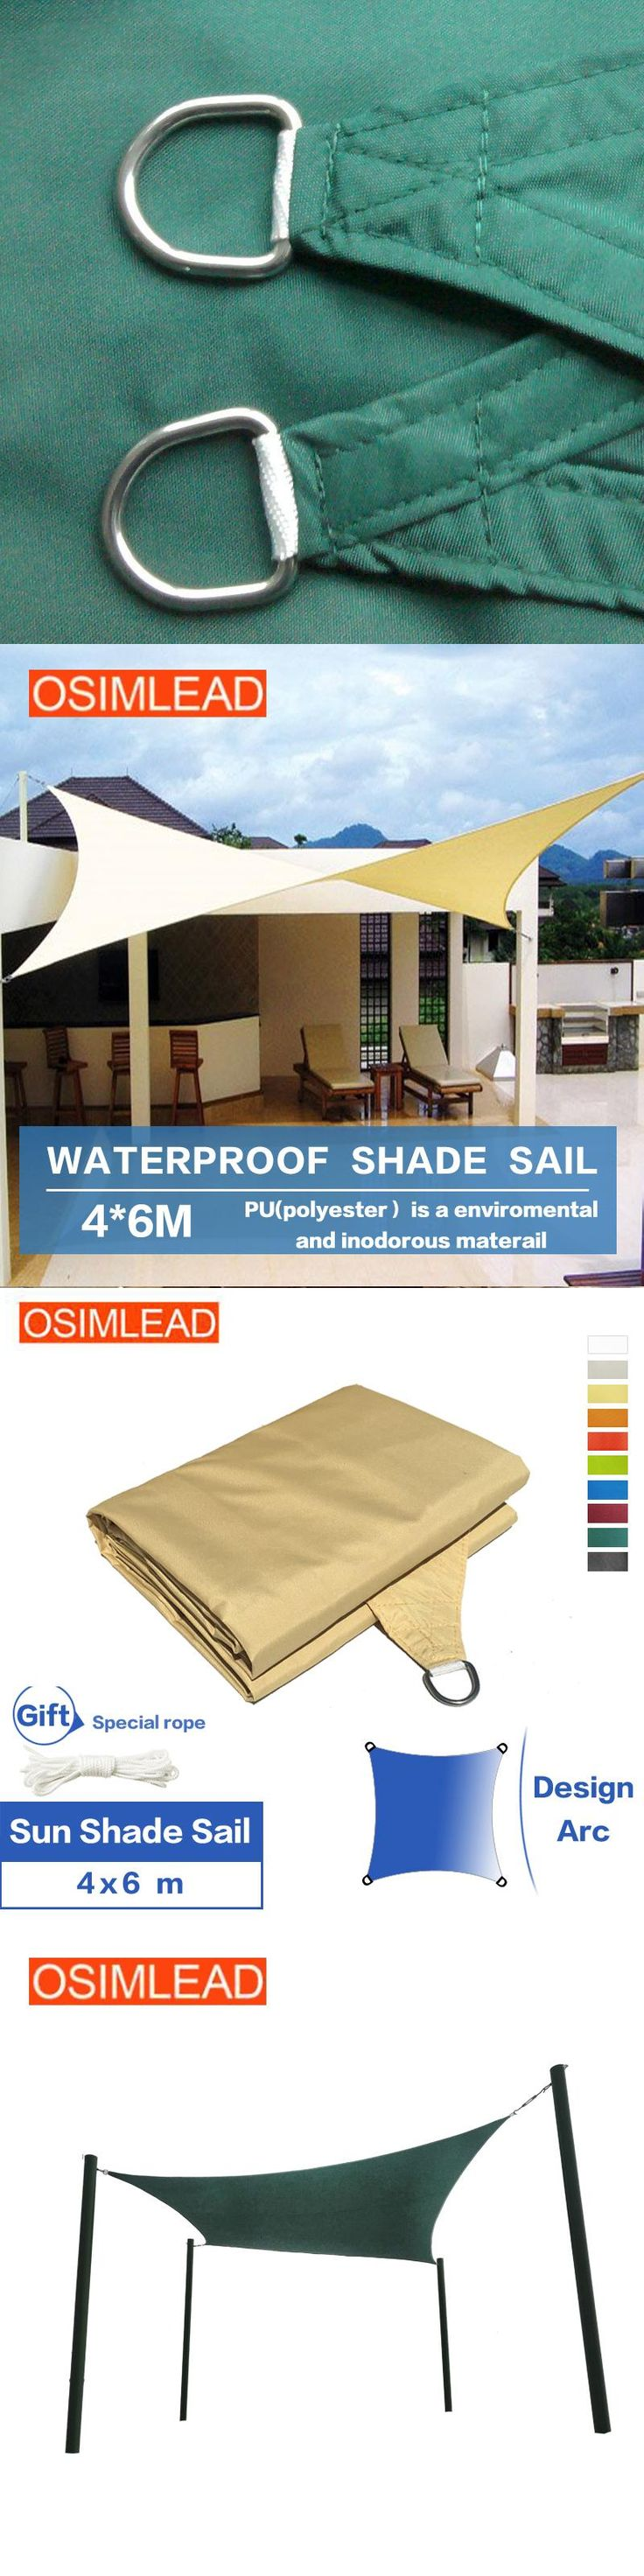 OSIMLEAD 4*6 m waterproof PU coated sun shade sail RECTANGLE CANOPY COVER - OUTDOOR PATIO AWNING - 13' *20'